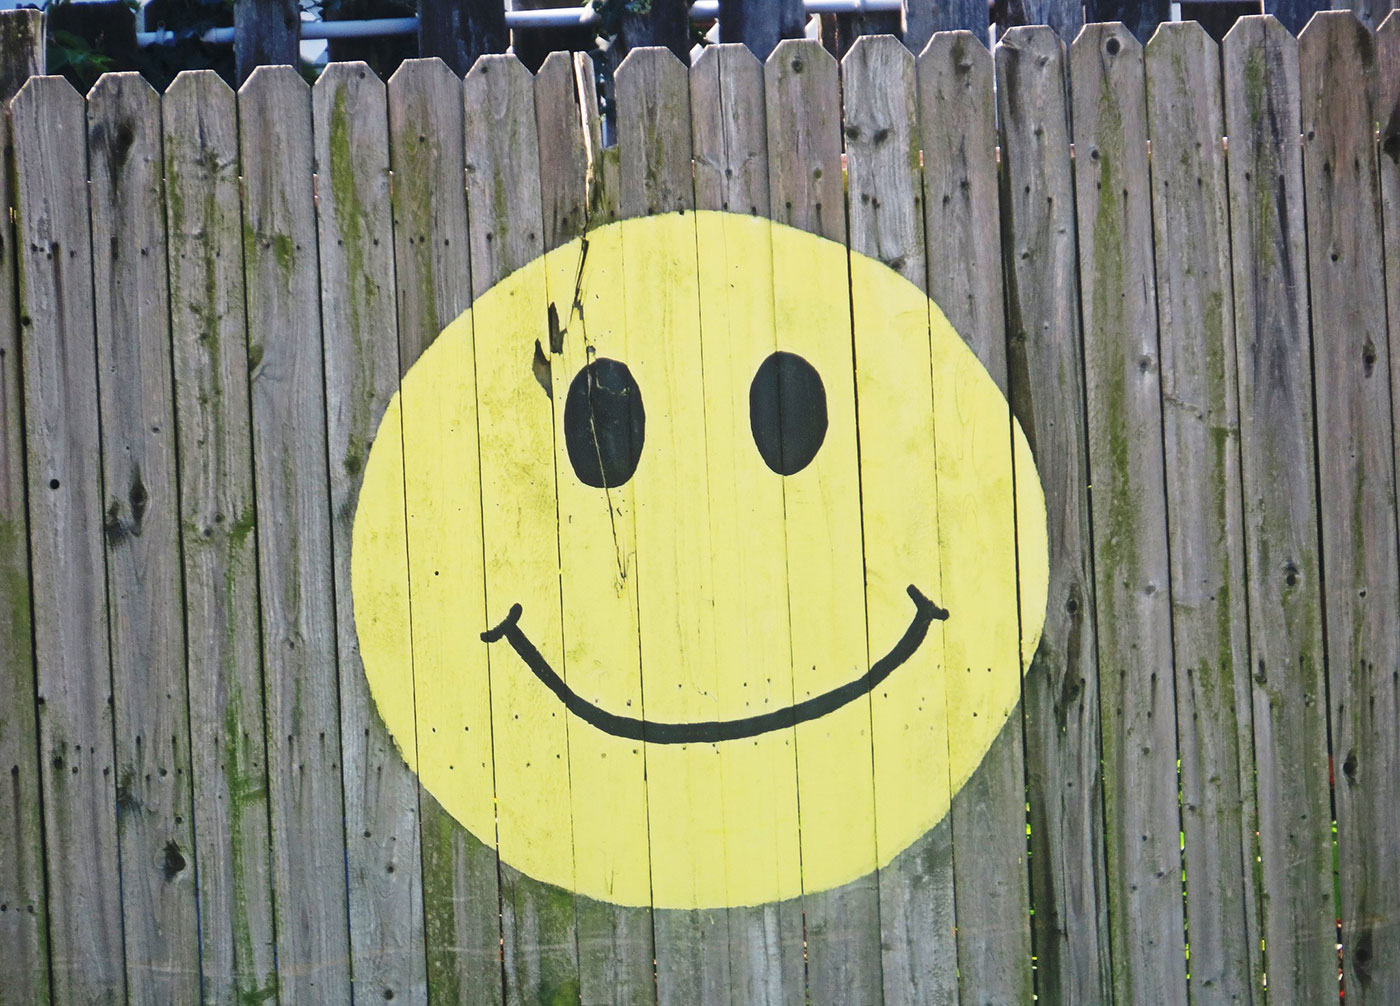 Smiley logo, the symbol for the acid house generation.